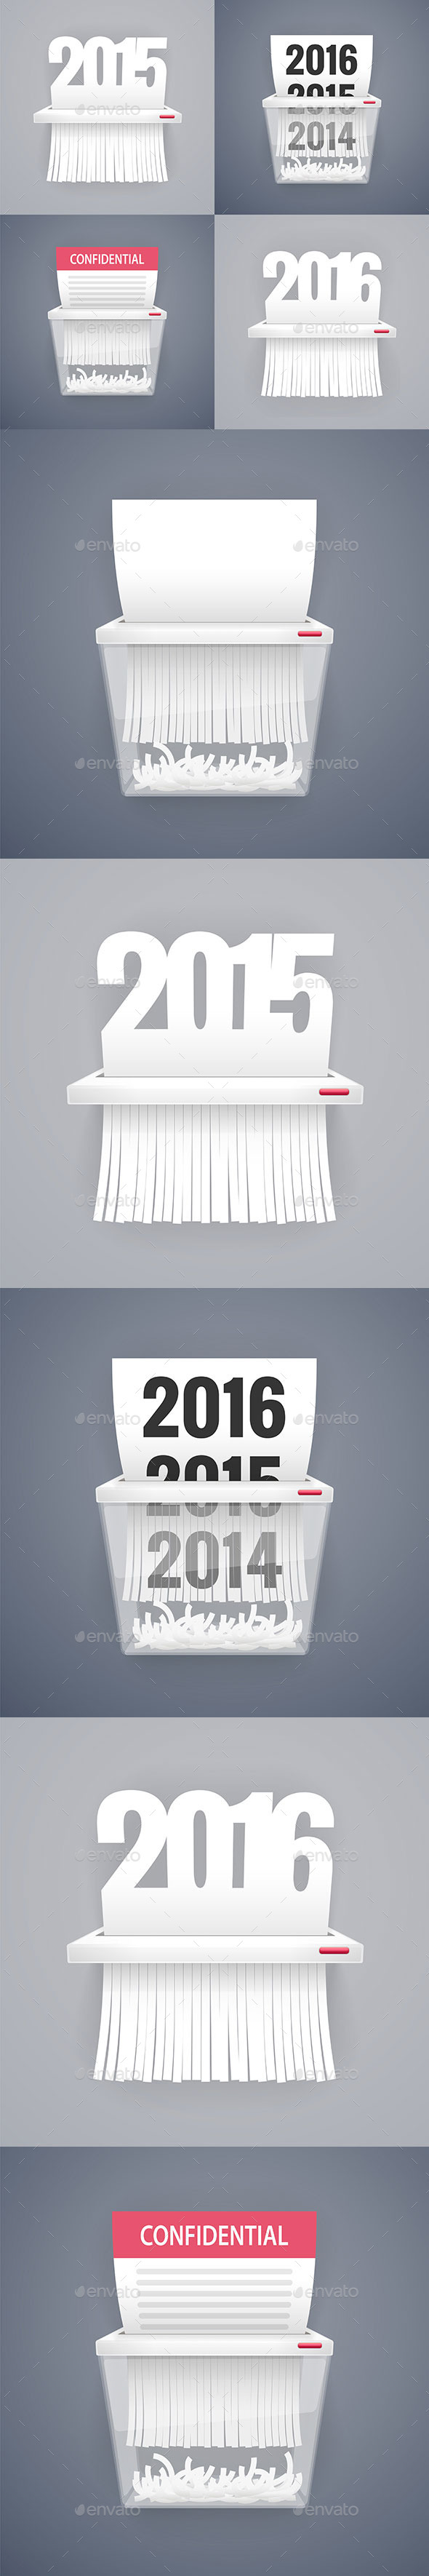 Set of Paper Shredder Illustrations with Dates - Man-made Objects Objects